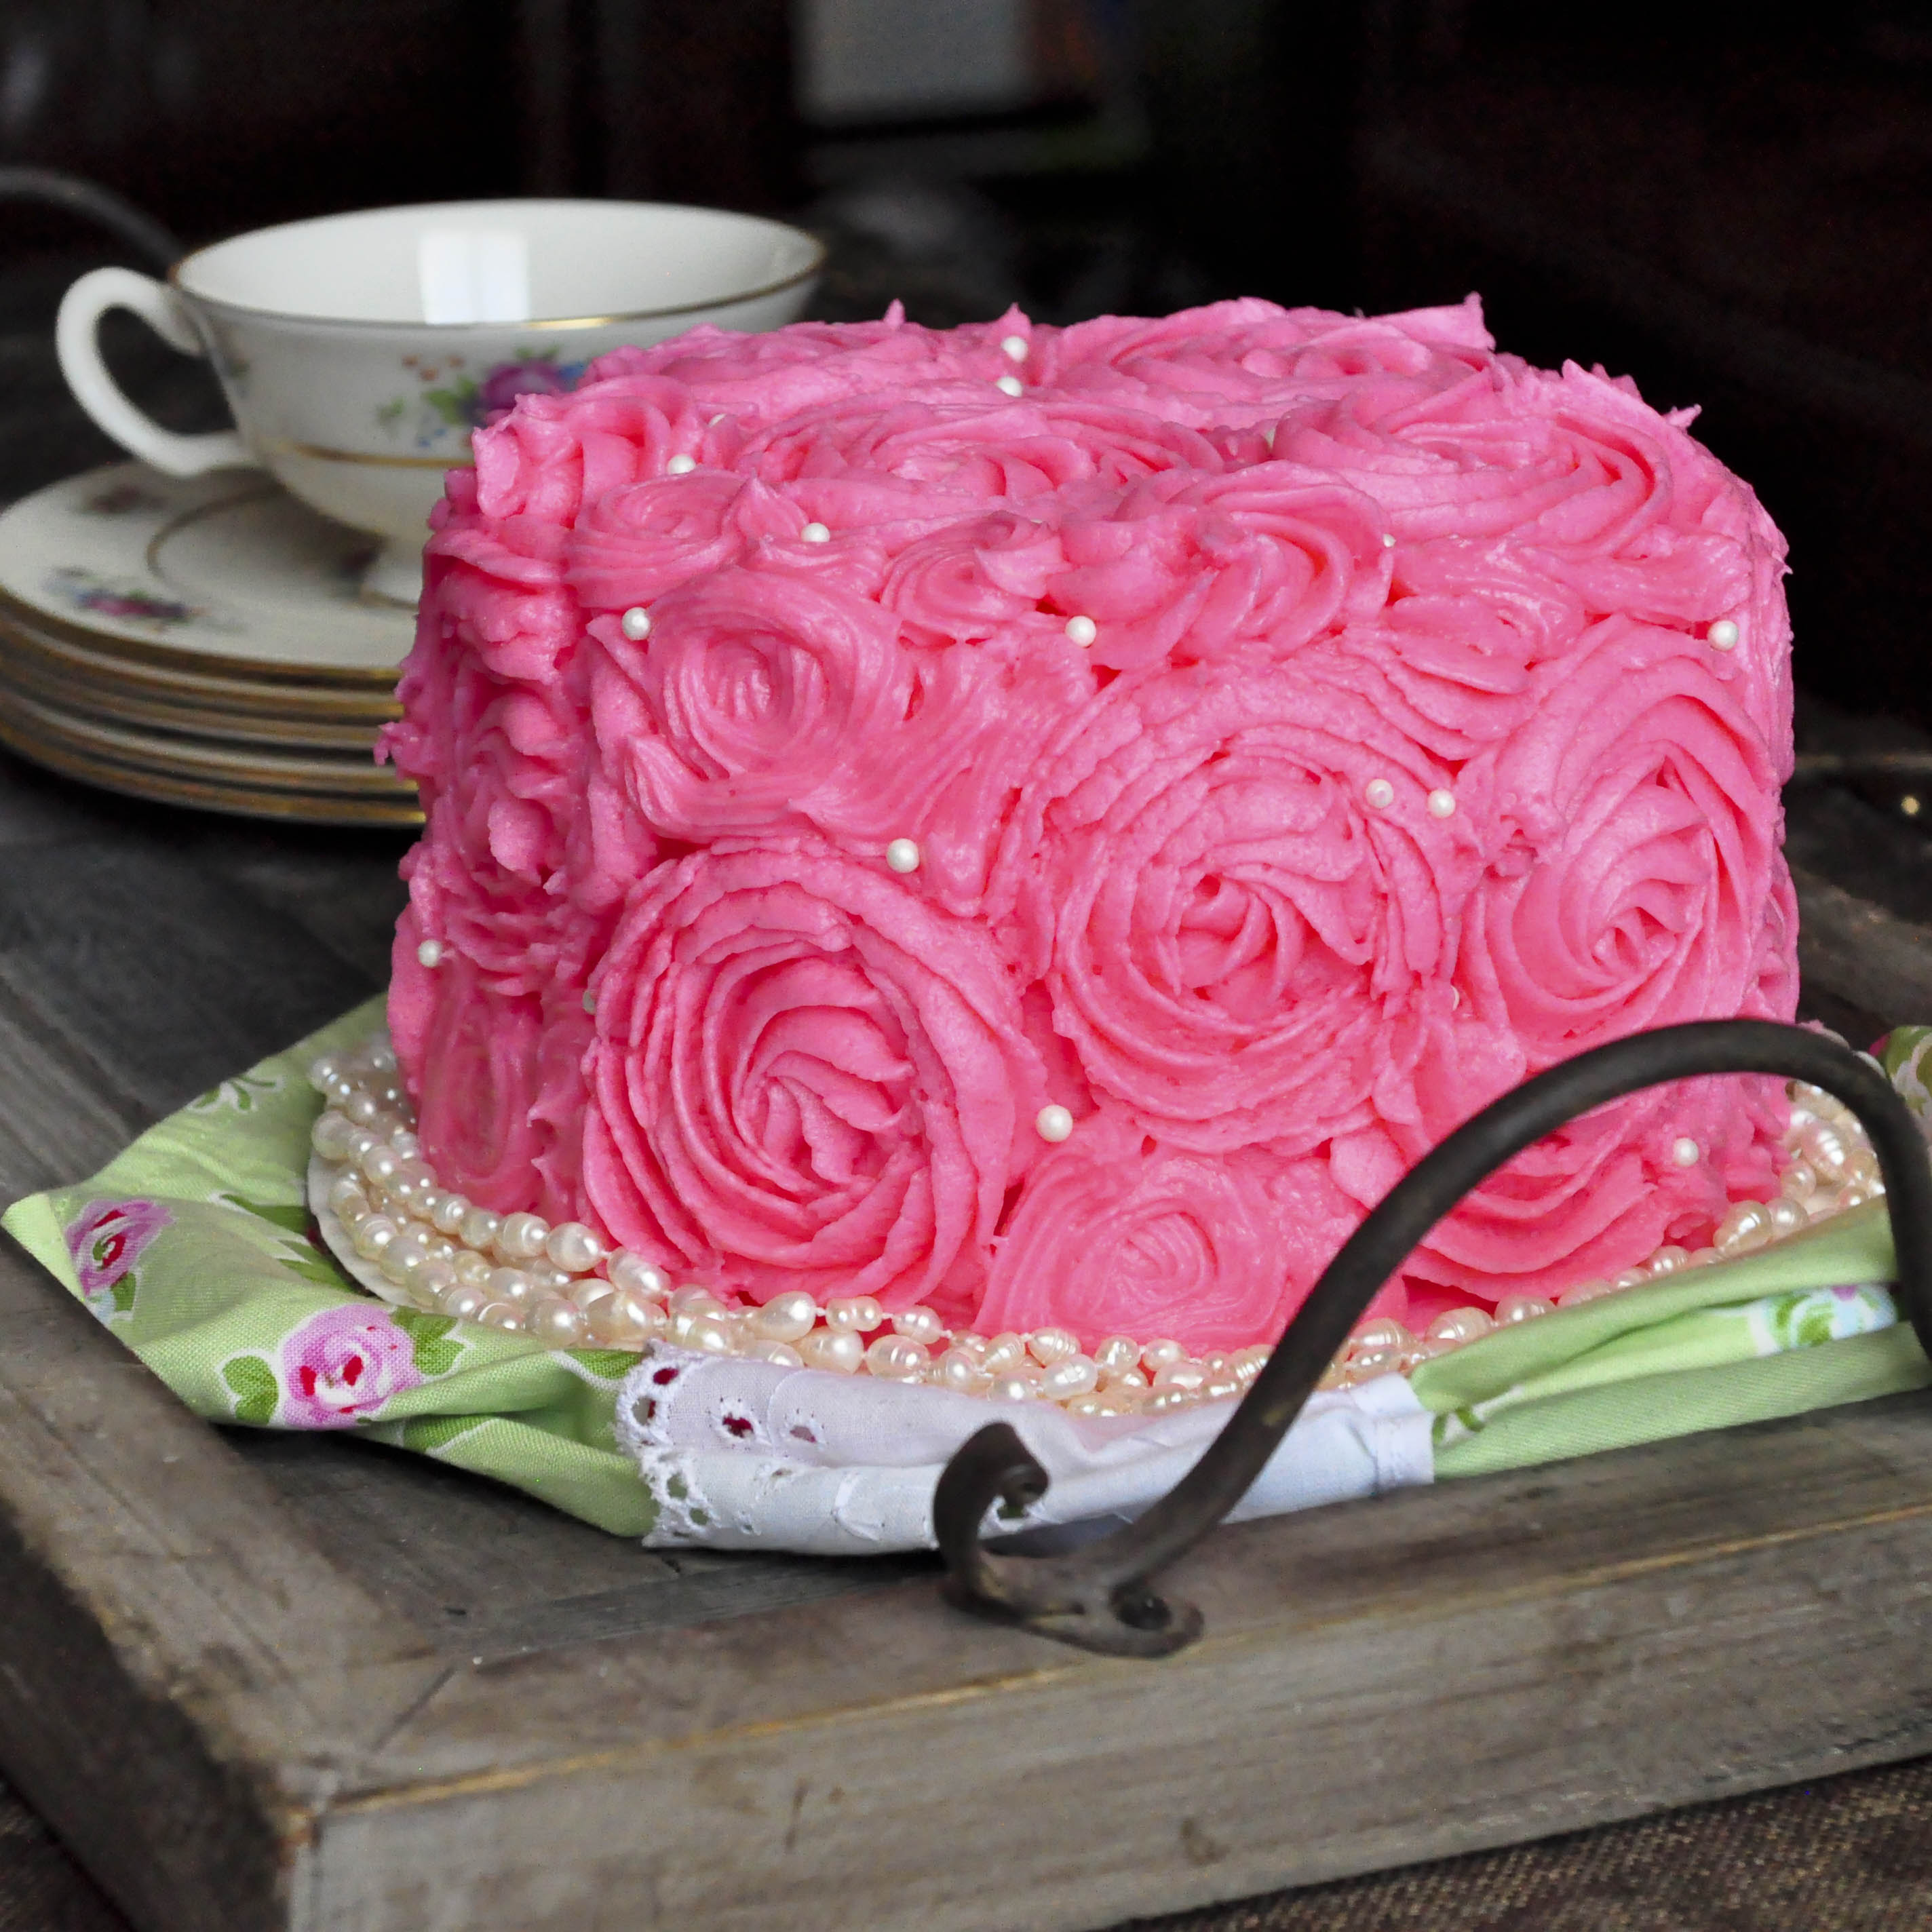 Pink Rose Cake Images : Pink Rose Bouquet Cake - Foods of Our Lives : ?????????? ...